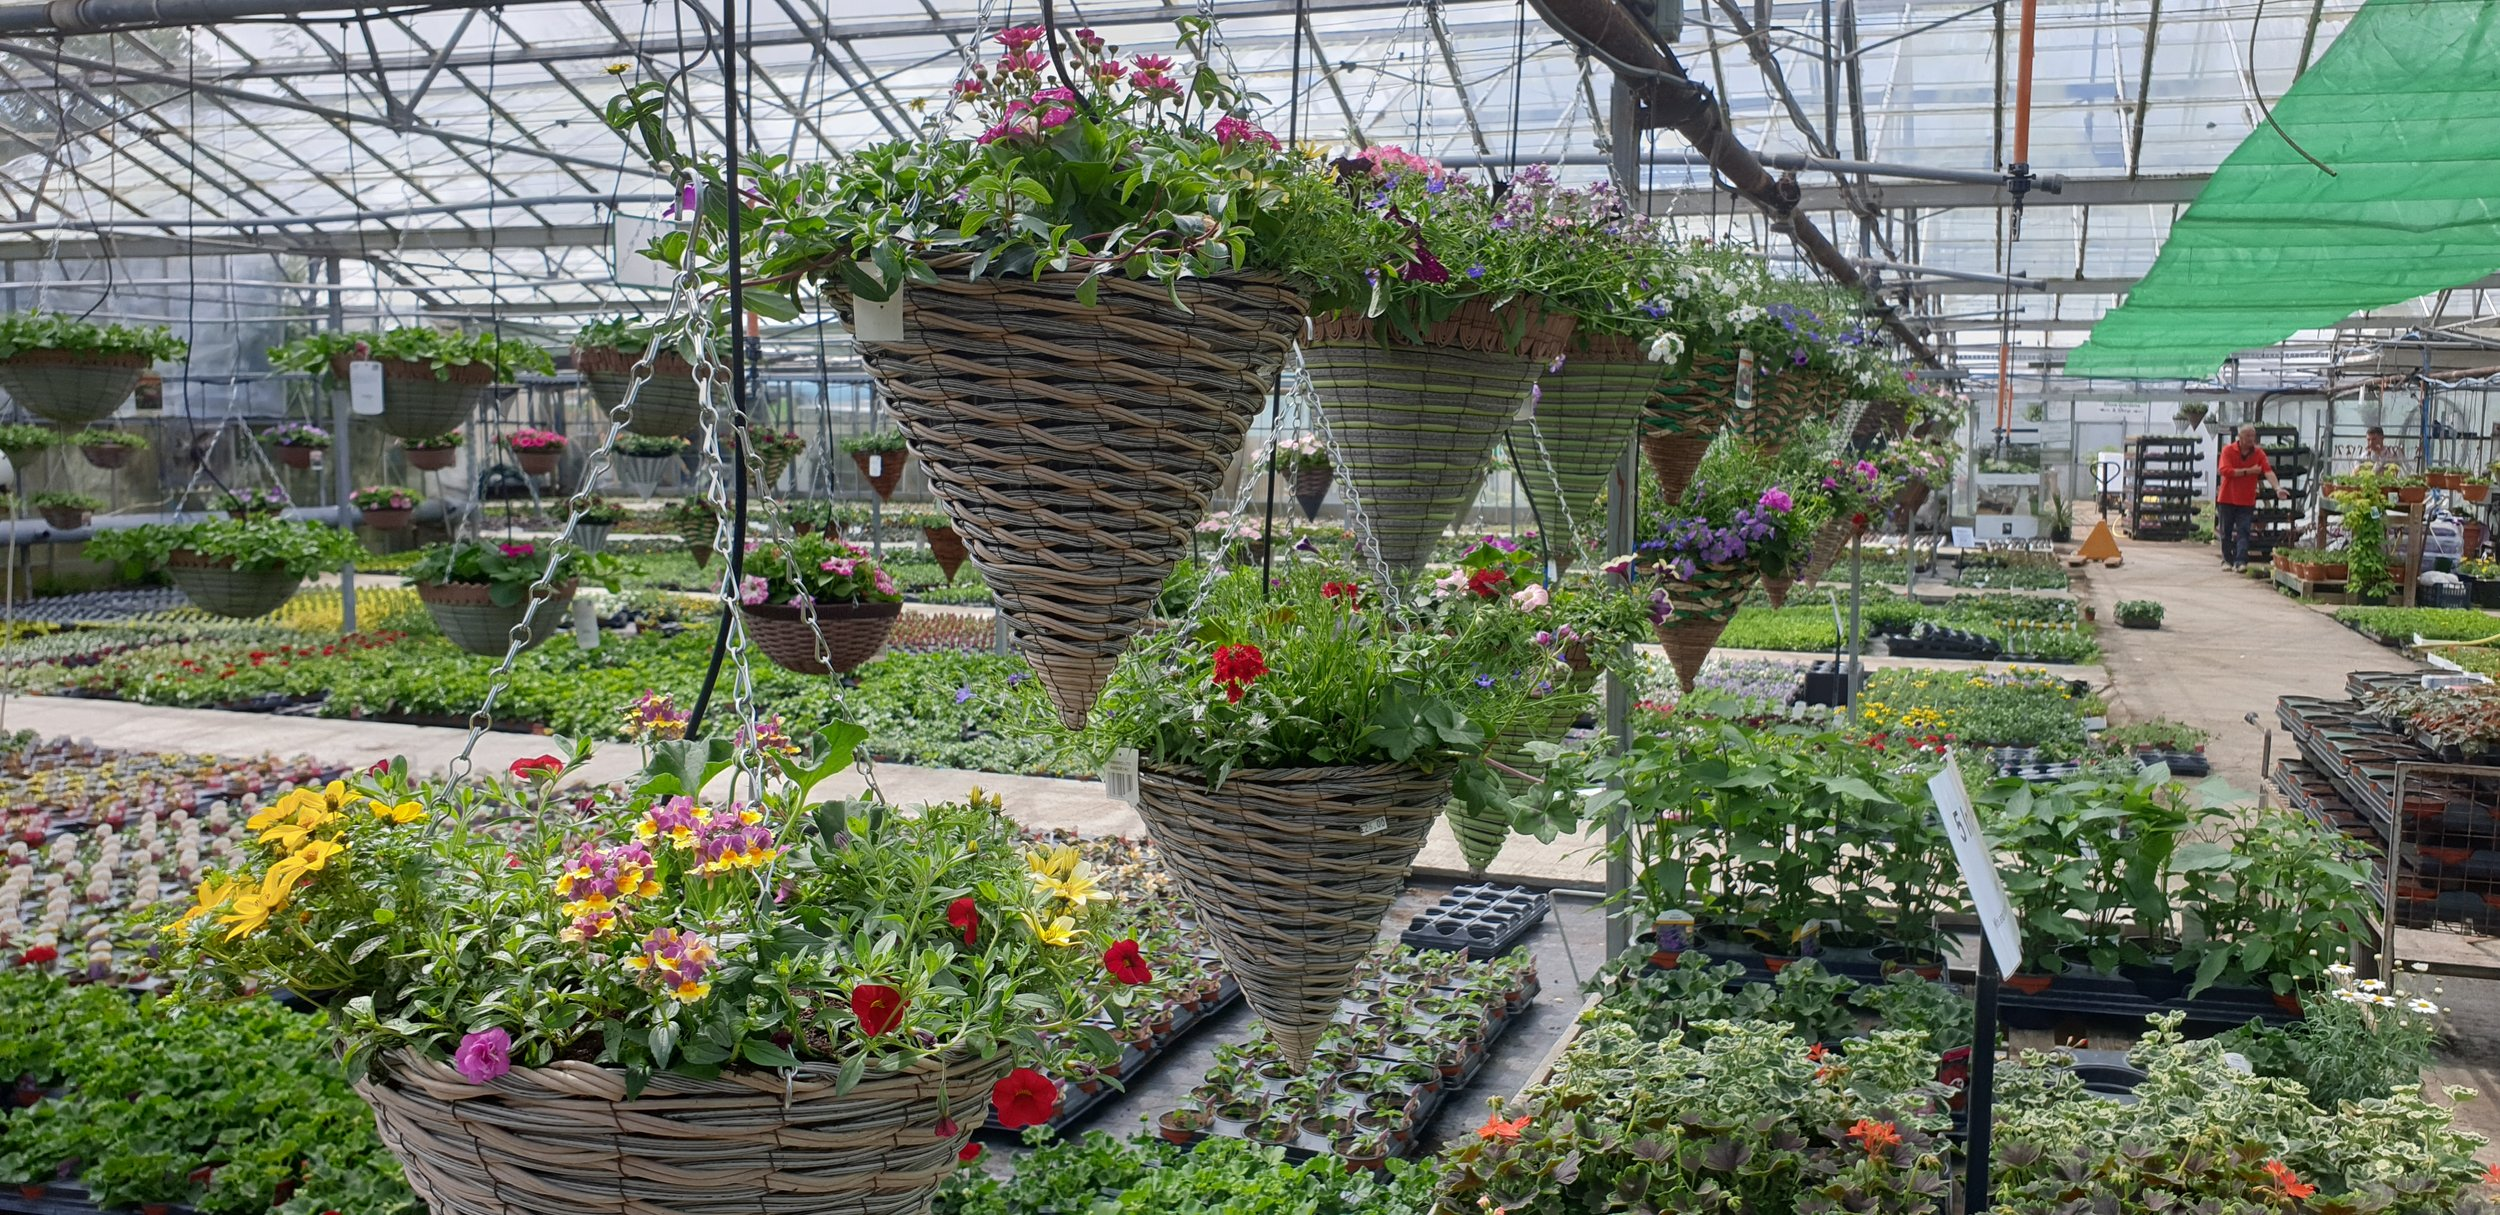 We Specialise in hanging baskets. - If your in need of great, lasting baskets that get better with time, visit us and take your choice. We only use home grown and repeat flowering cutting raised plants.